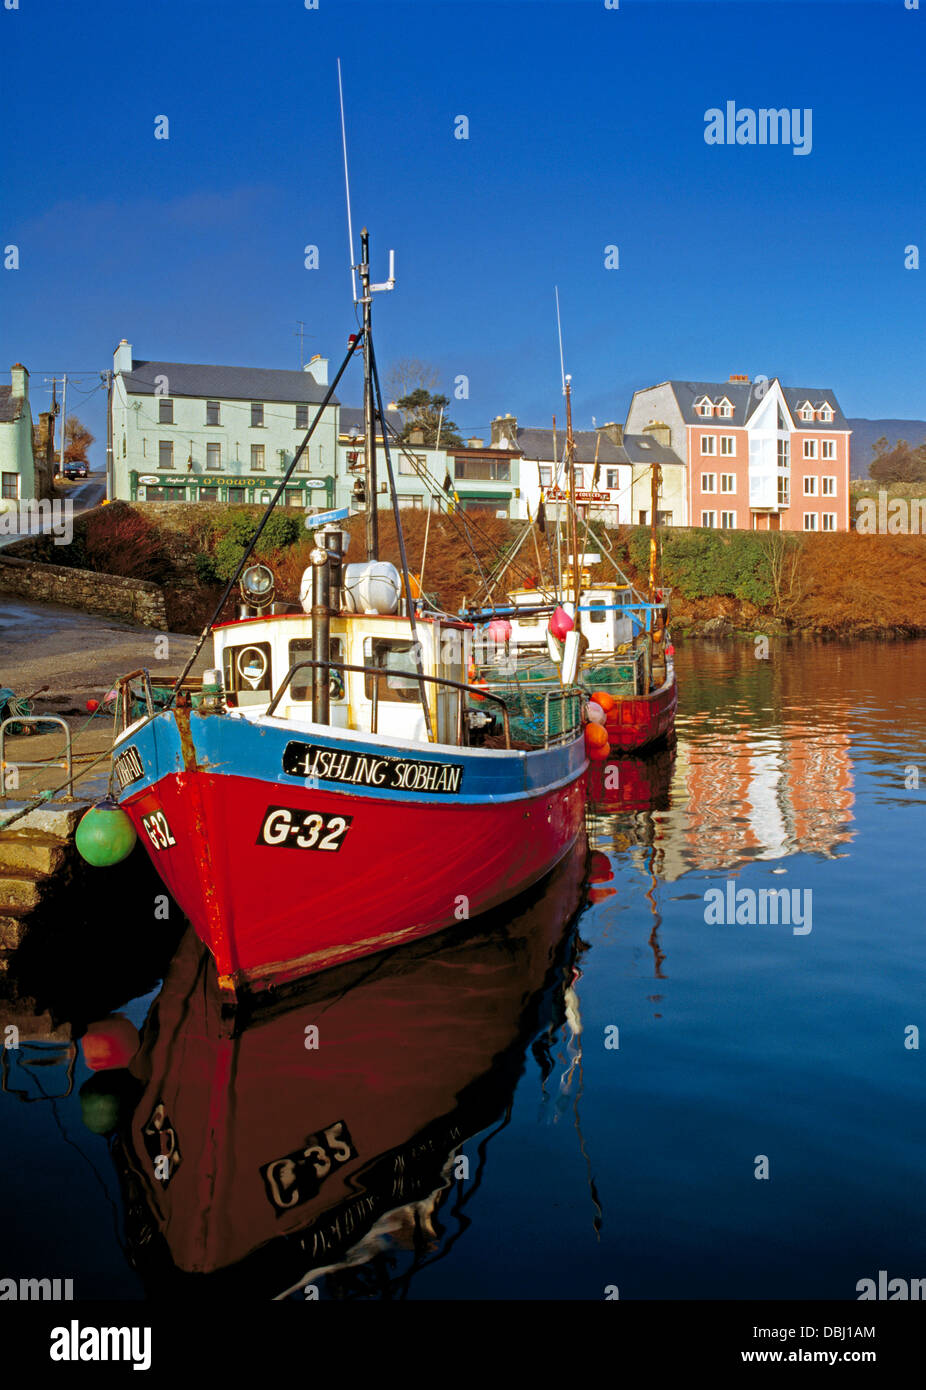 Fishing boats, early morning in the harbour of the Connemara village of Roundstone, county Galway, Ireland - Stock Image